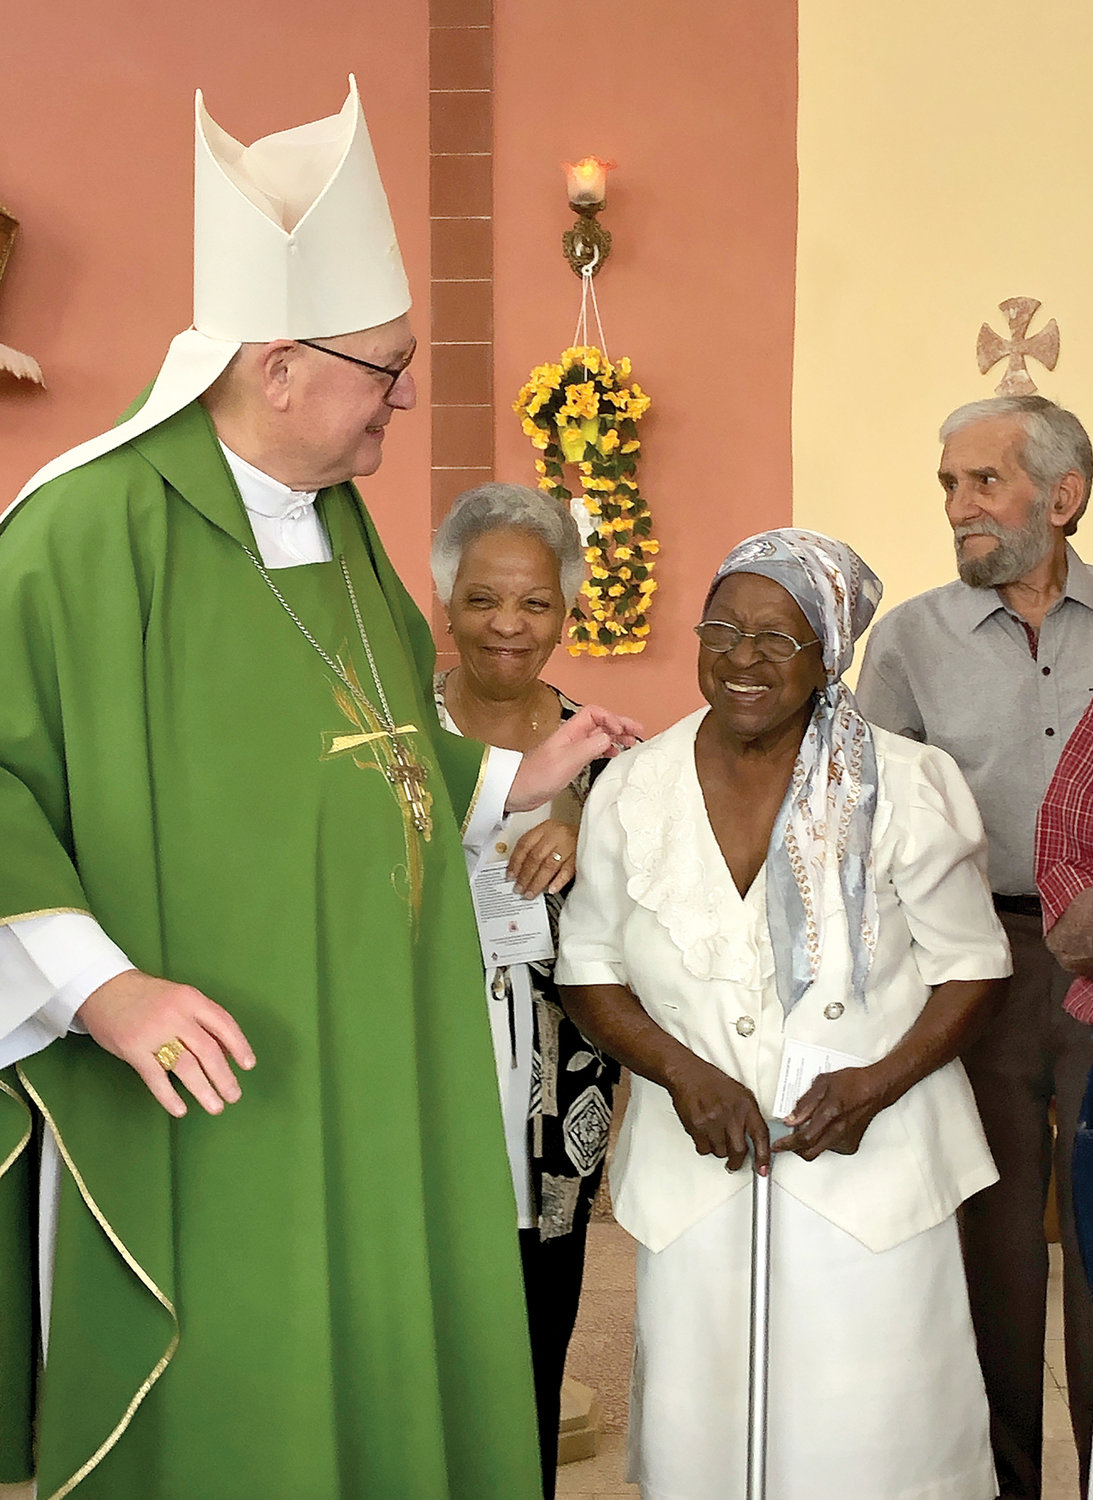 LIGHT MOMENT—Cardinal Dolan engages in friendly banter with residents of a home for the elderly in Camaguey, Cuba, after celebrating Mass there Feb. 9. The cardinal was in the midst of a six-day mission visit, his first on the island.